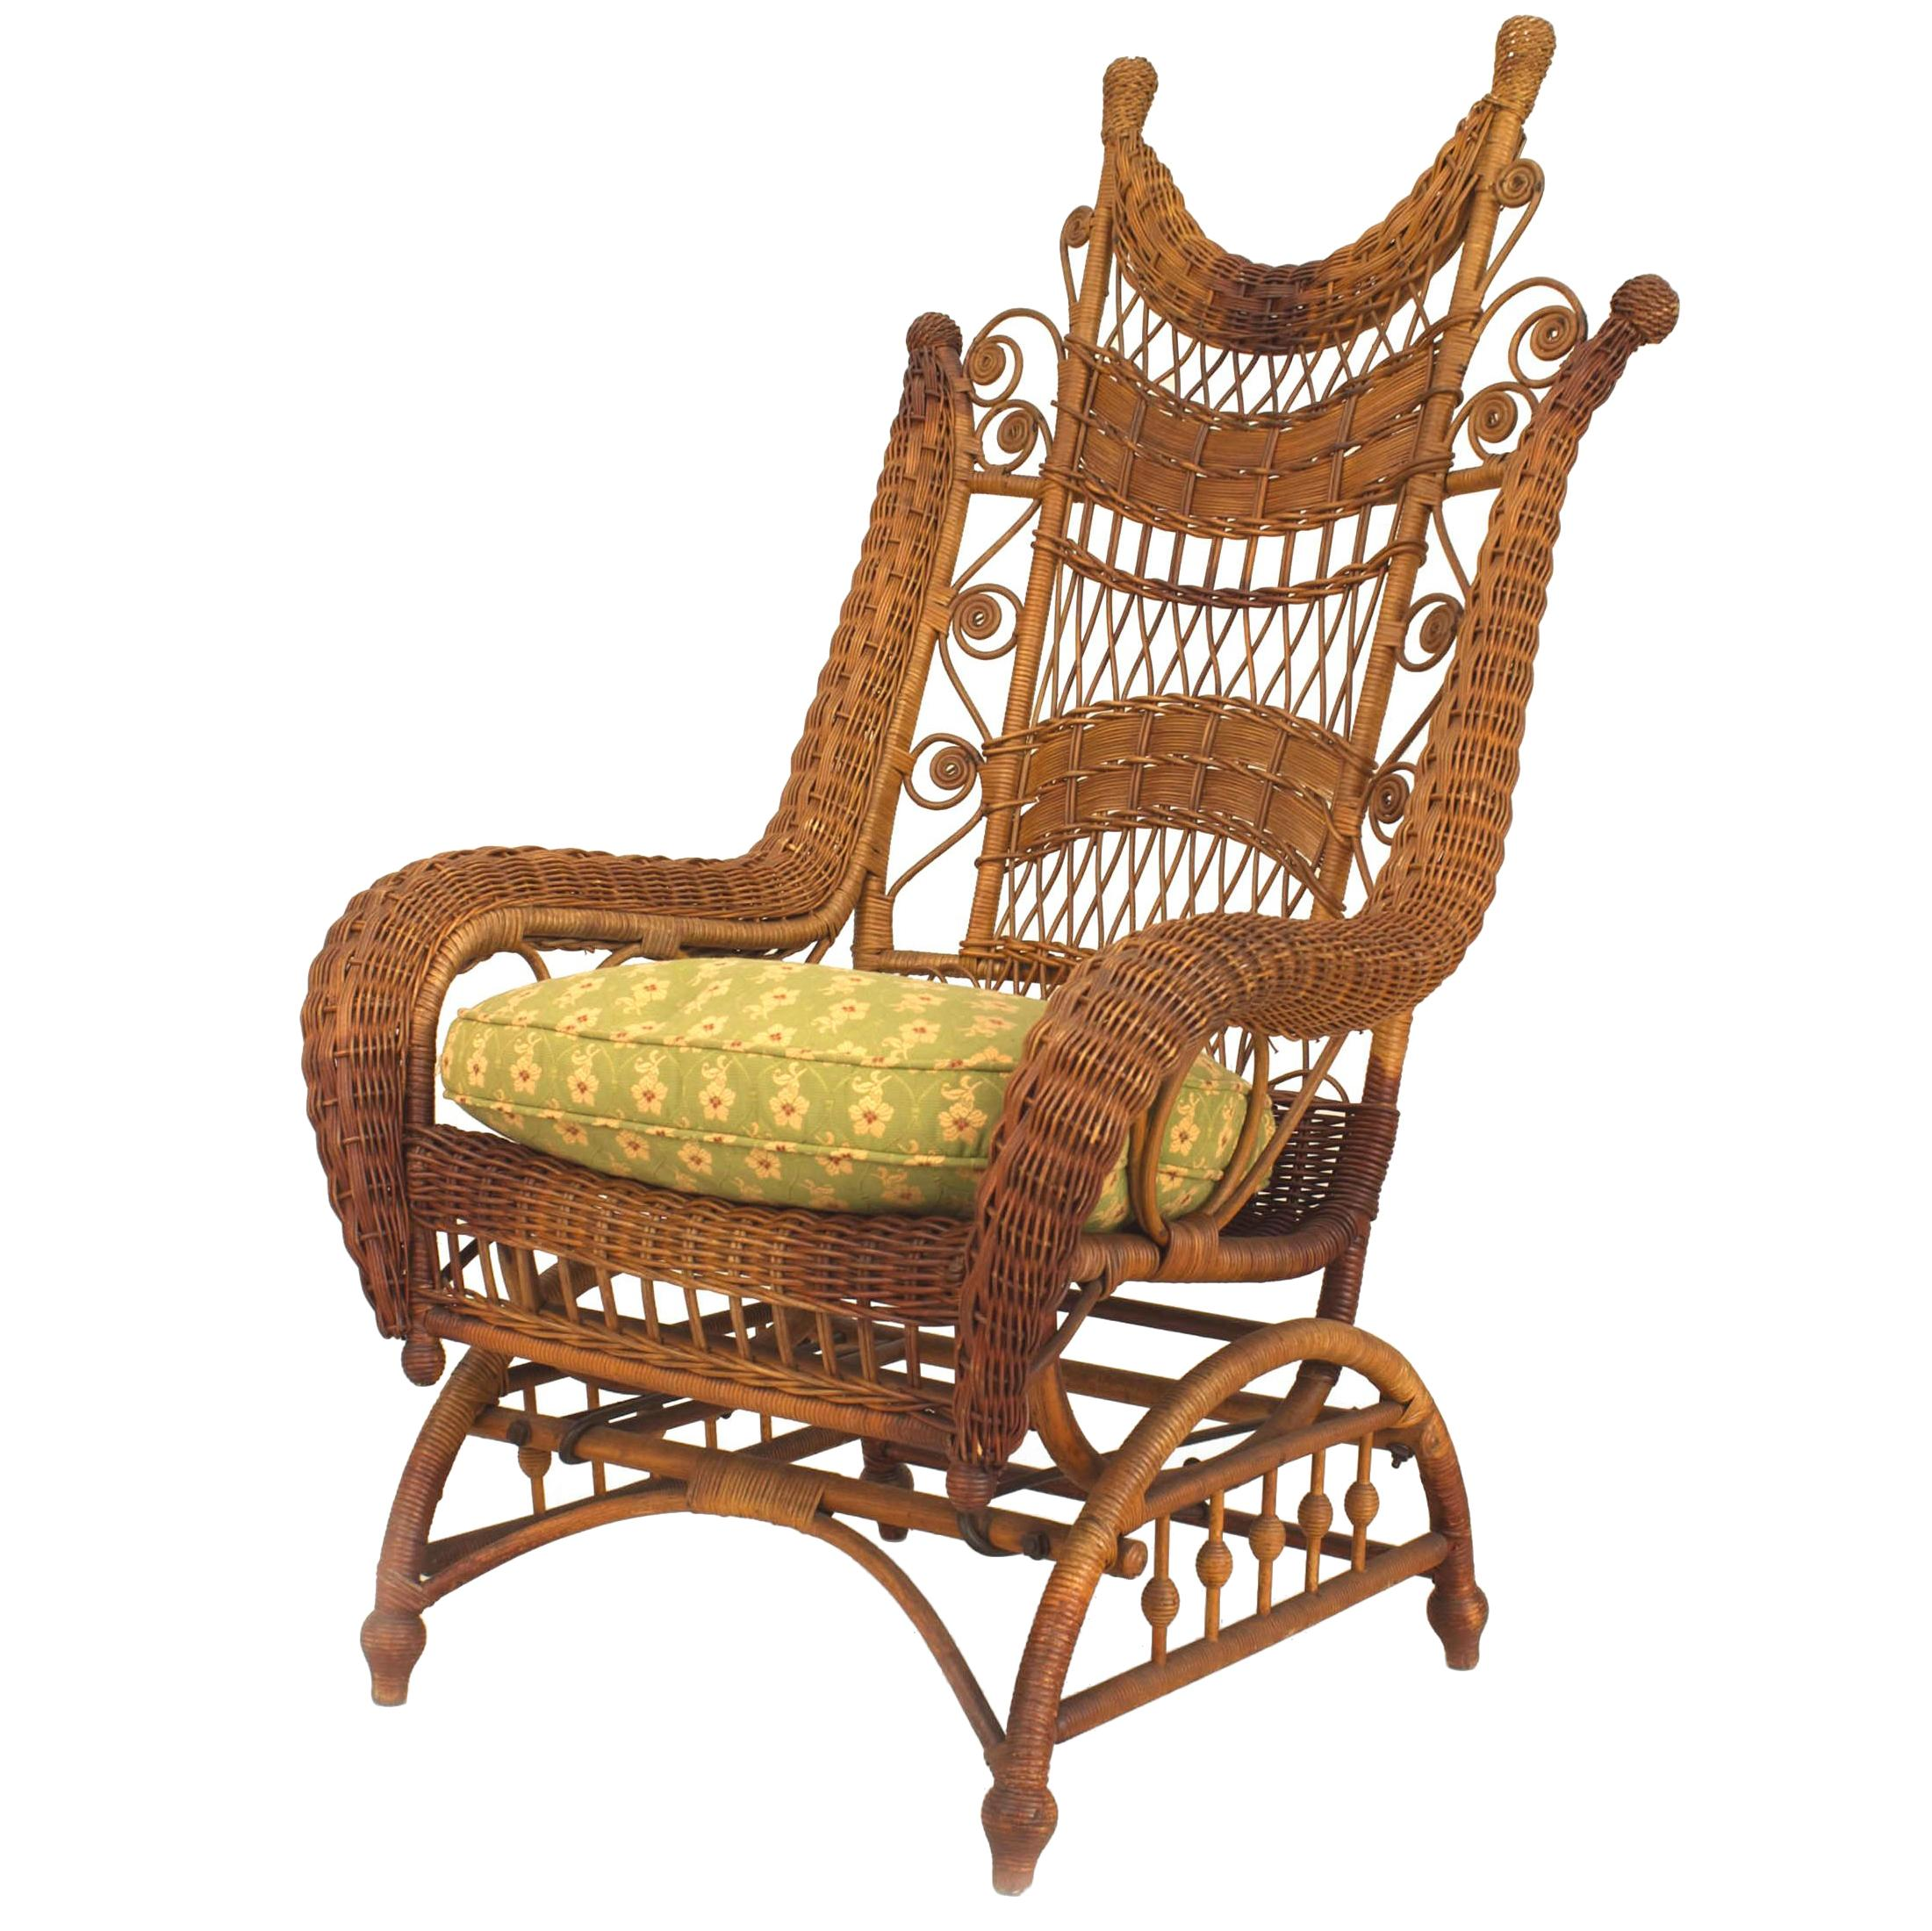 19th Century American Ornate High Back Wicker Rocking Chair